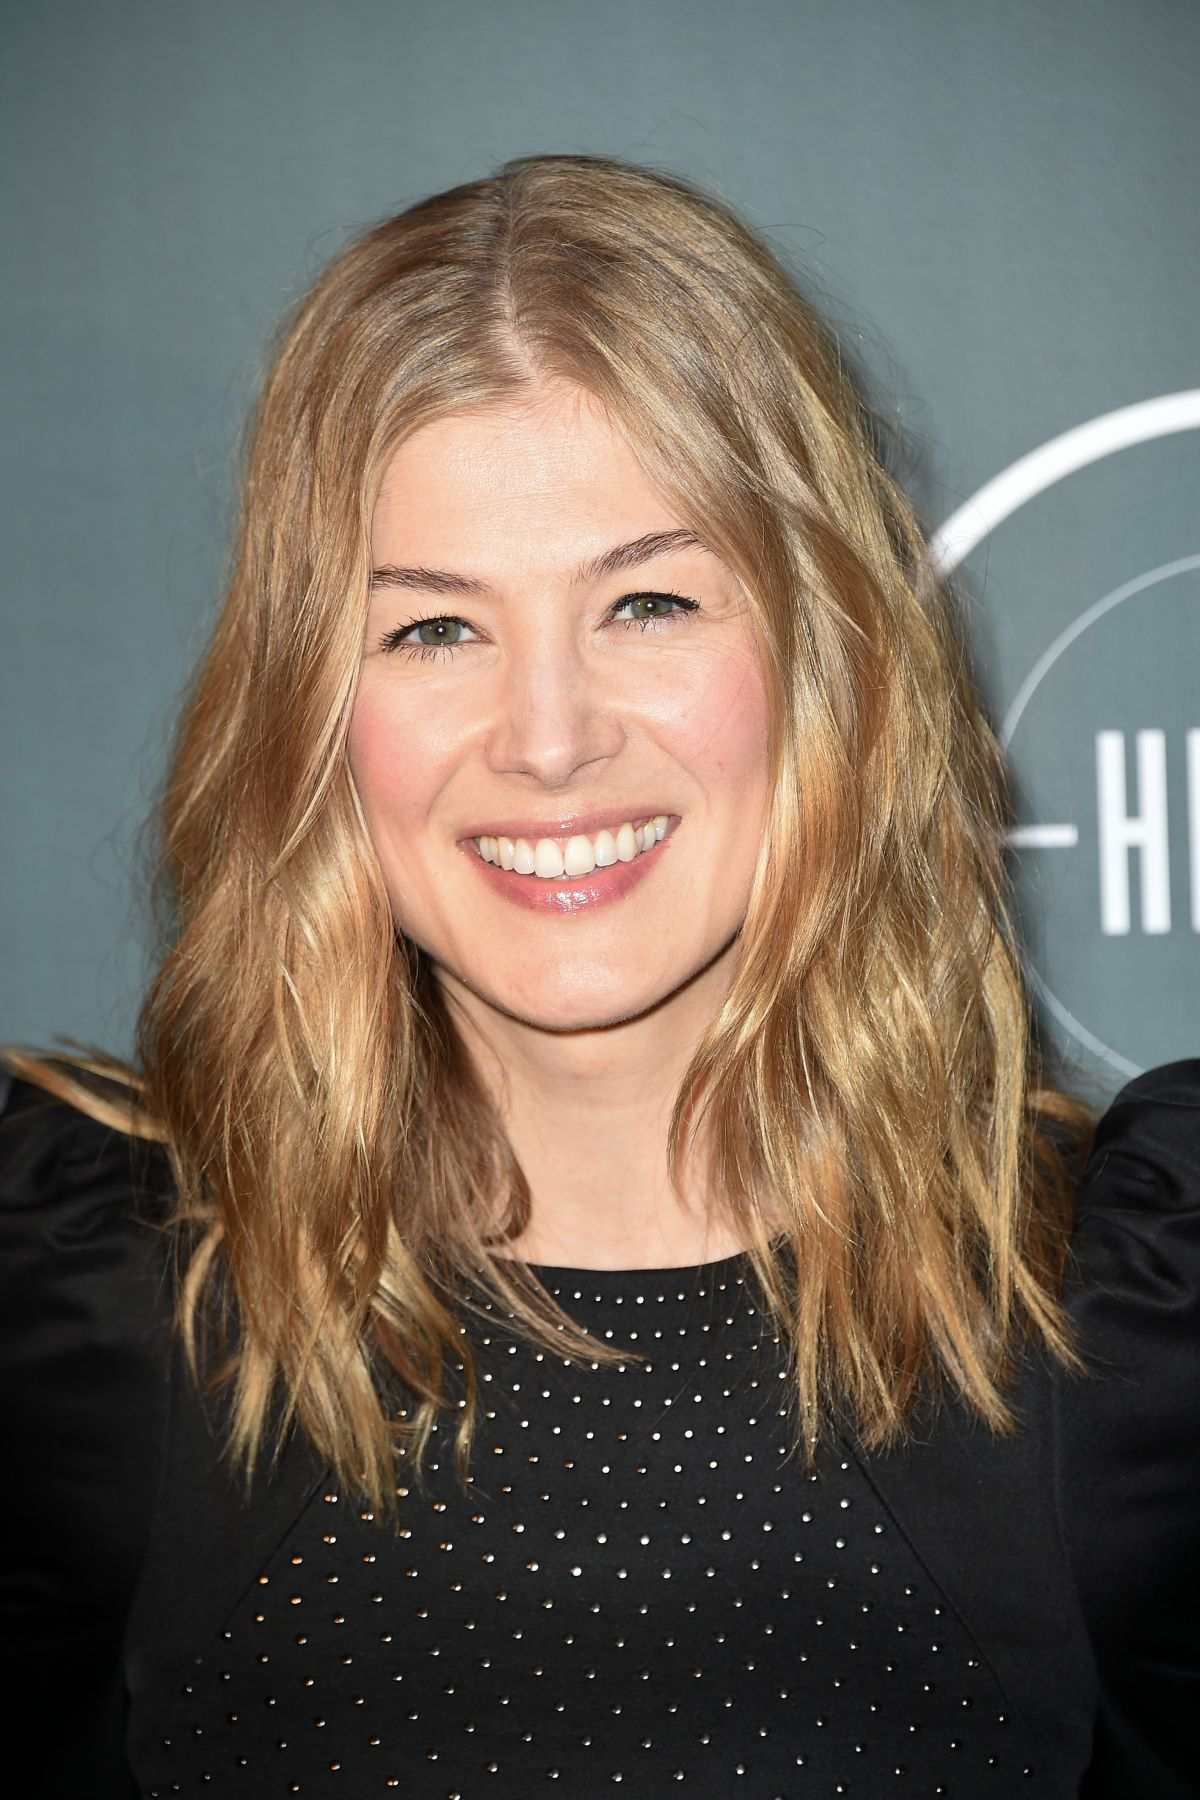 Rosamund Pike At 'HH...